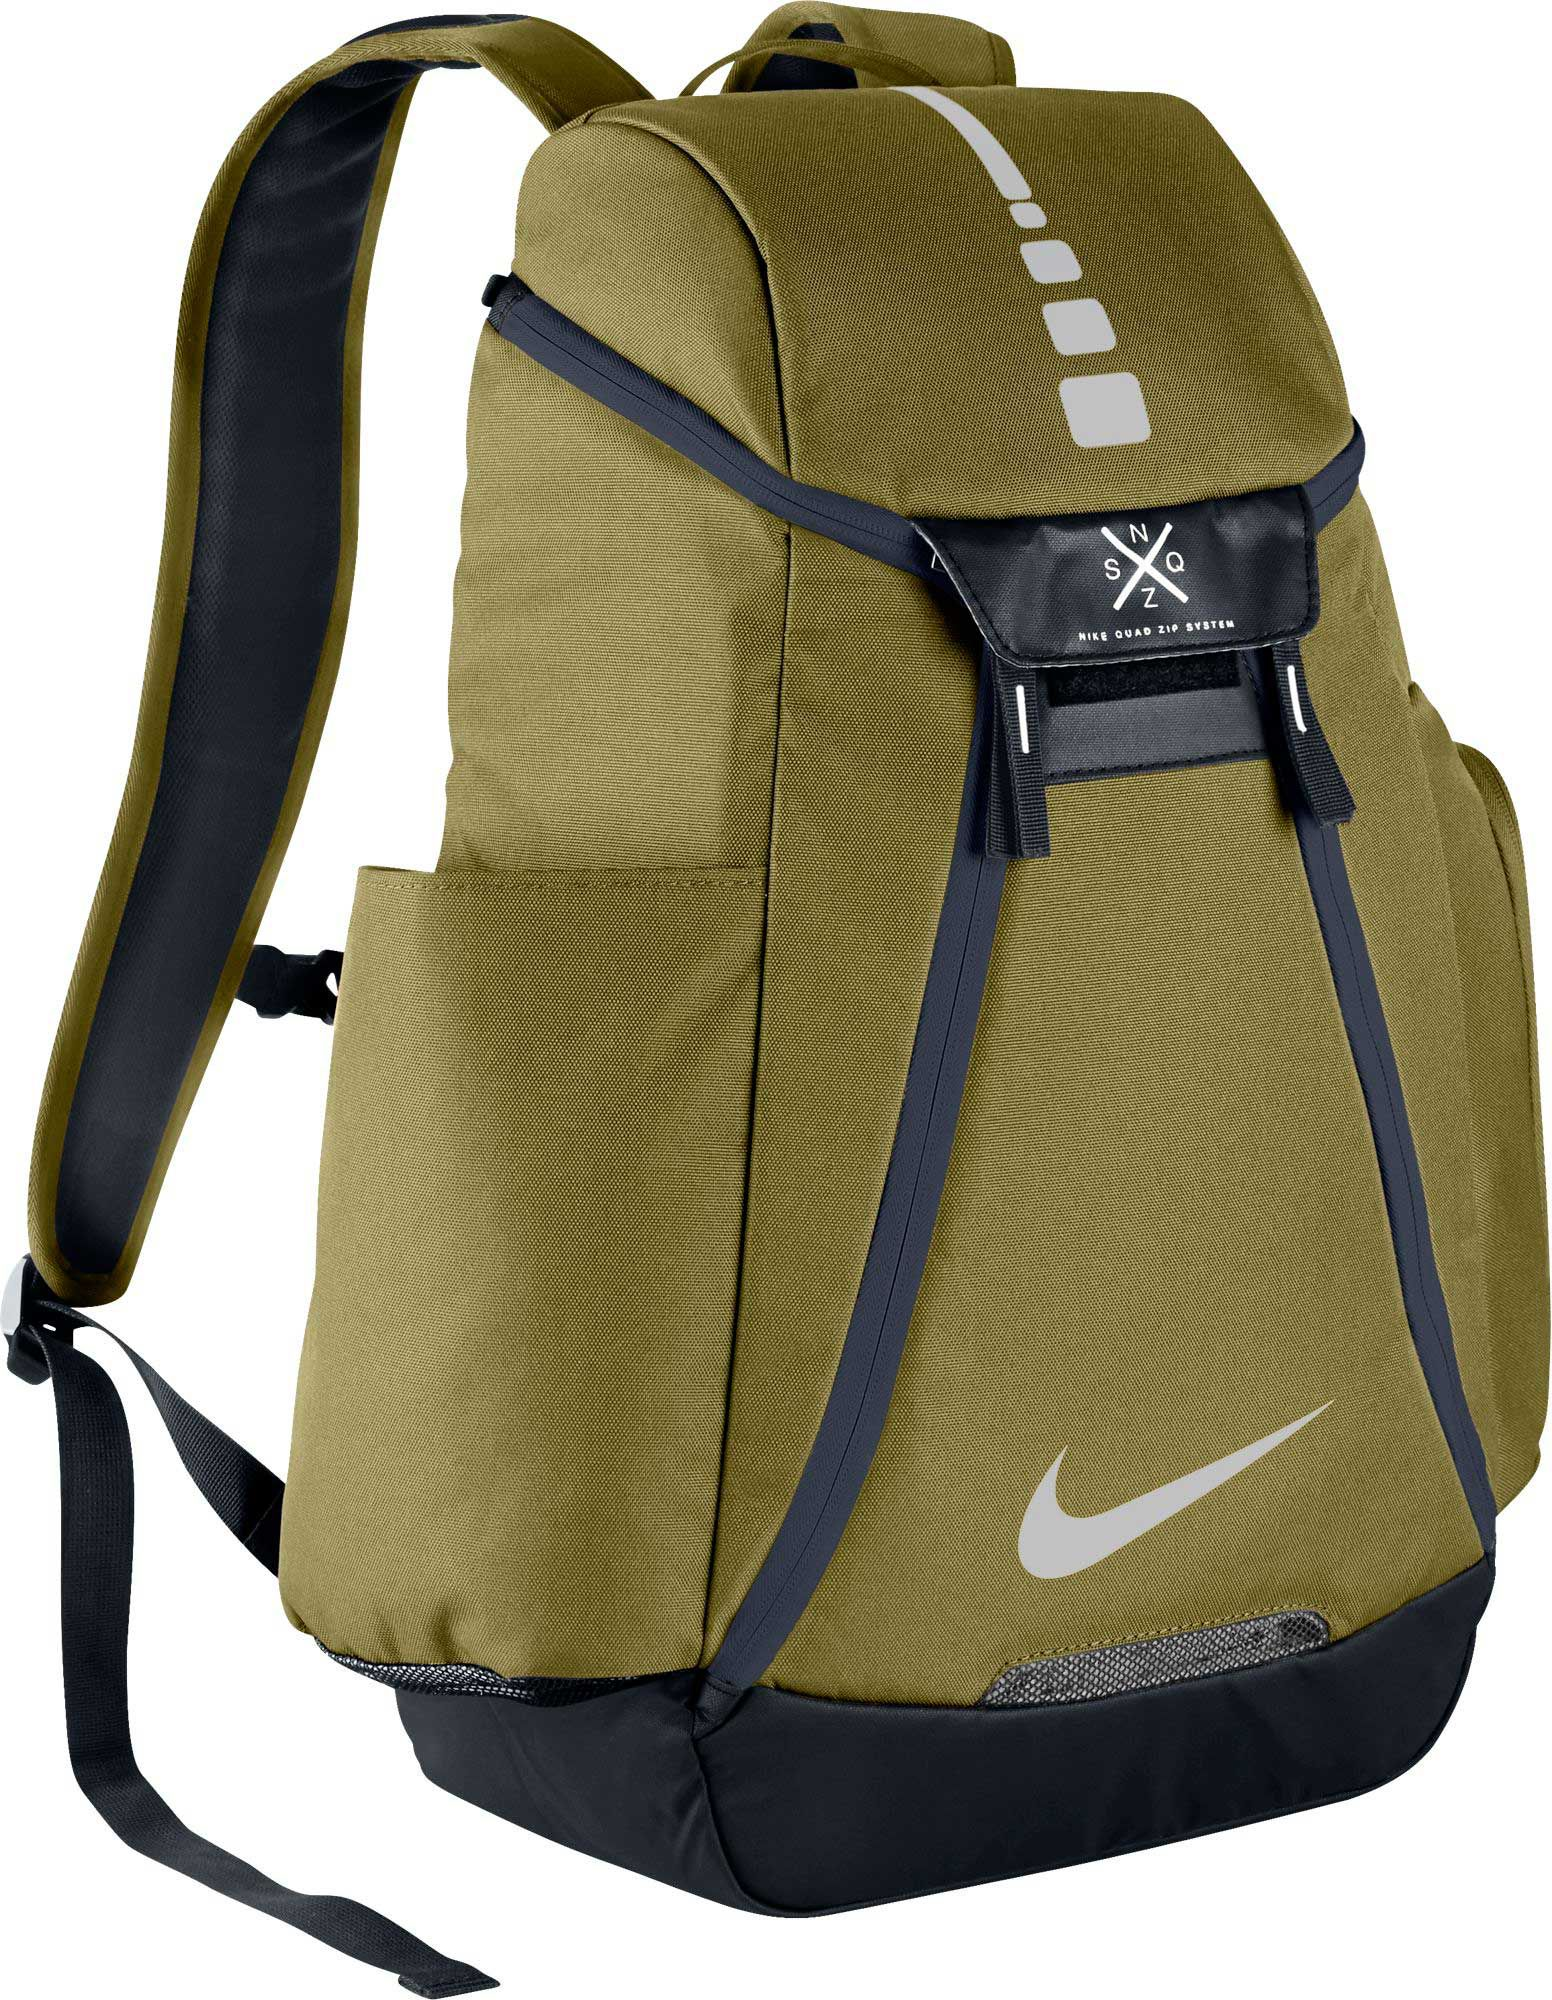 School Backpacks | DICK'S Sporting Goods